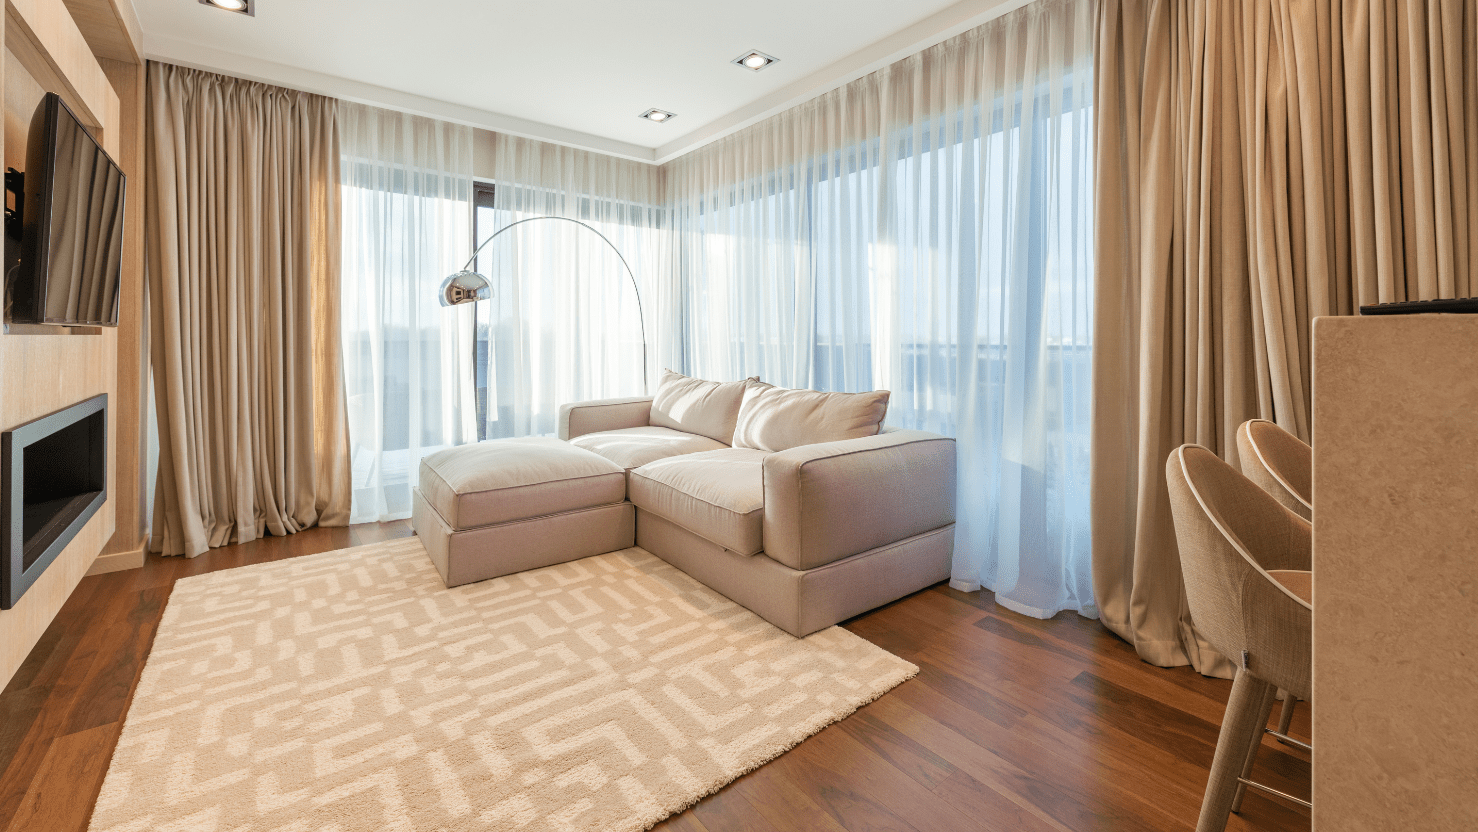 Tips on hanging curtains without damaging walls or window frame